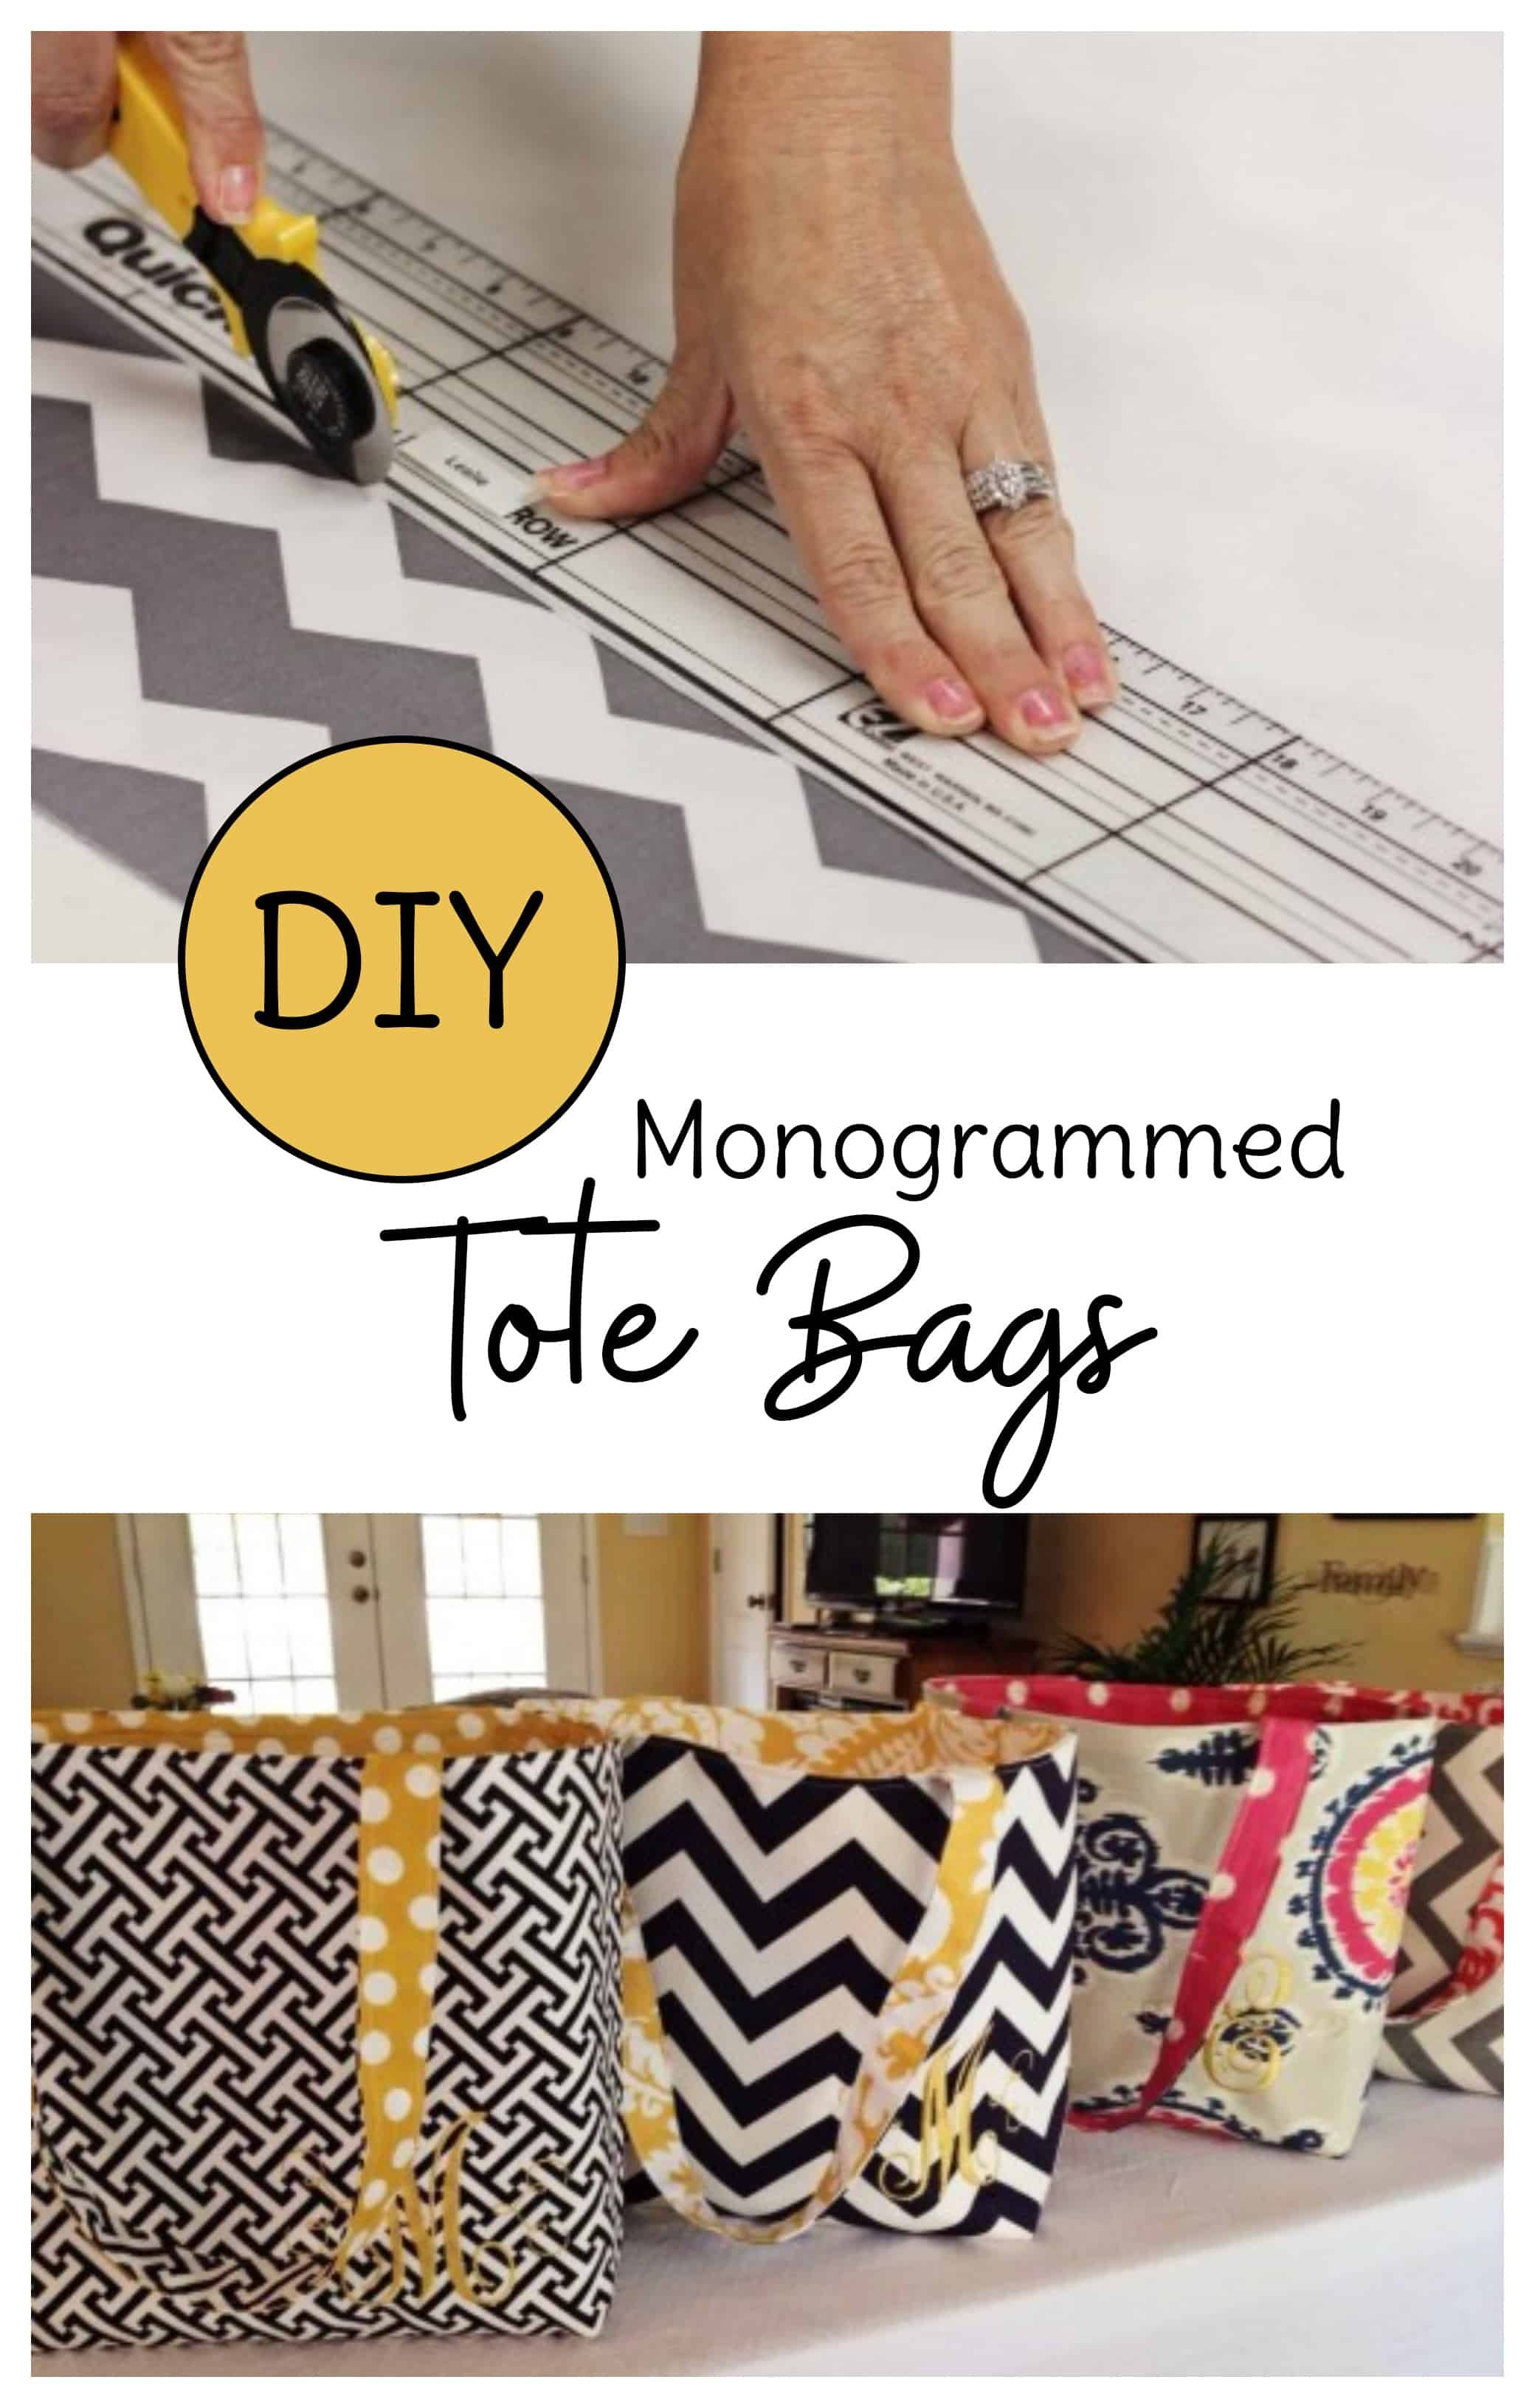 Looking for sewing projects for beginners? Make your own DIY tote bags with this free tote bag pattern. Monogram optional, but cute! #sewing #freepattern via Jenn @ Sweet T Makes Three    Source by hanneloremumm #shopping bags